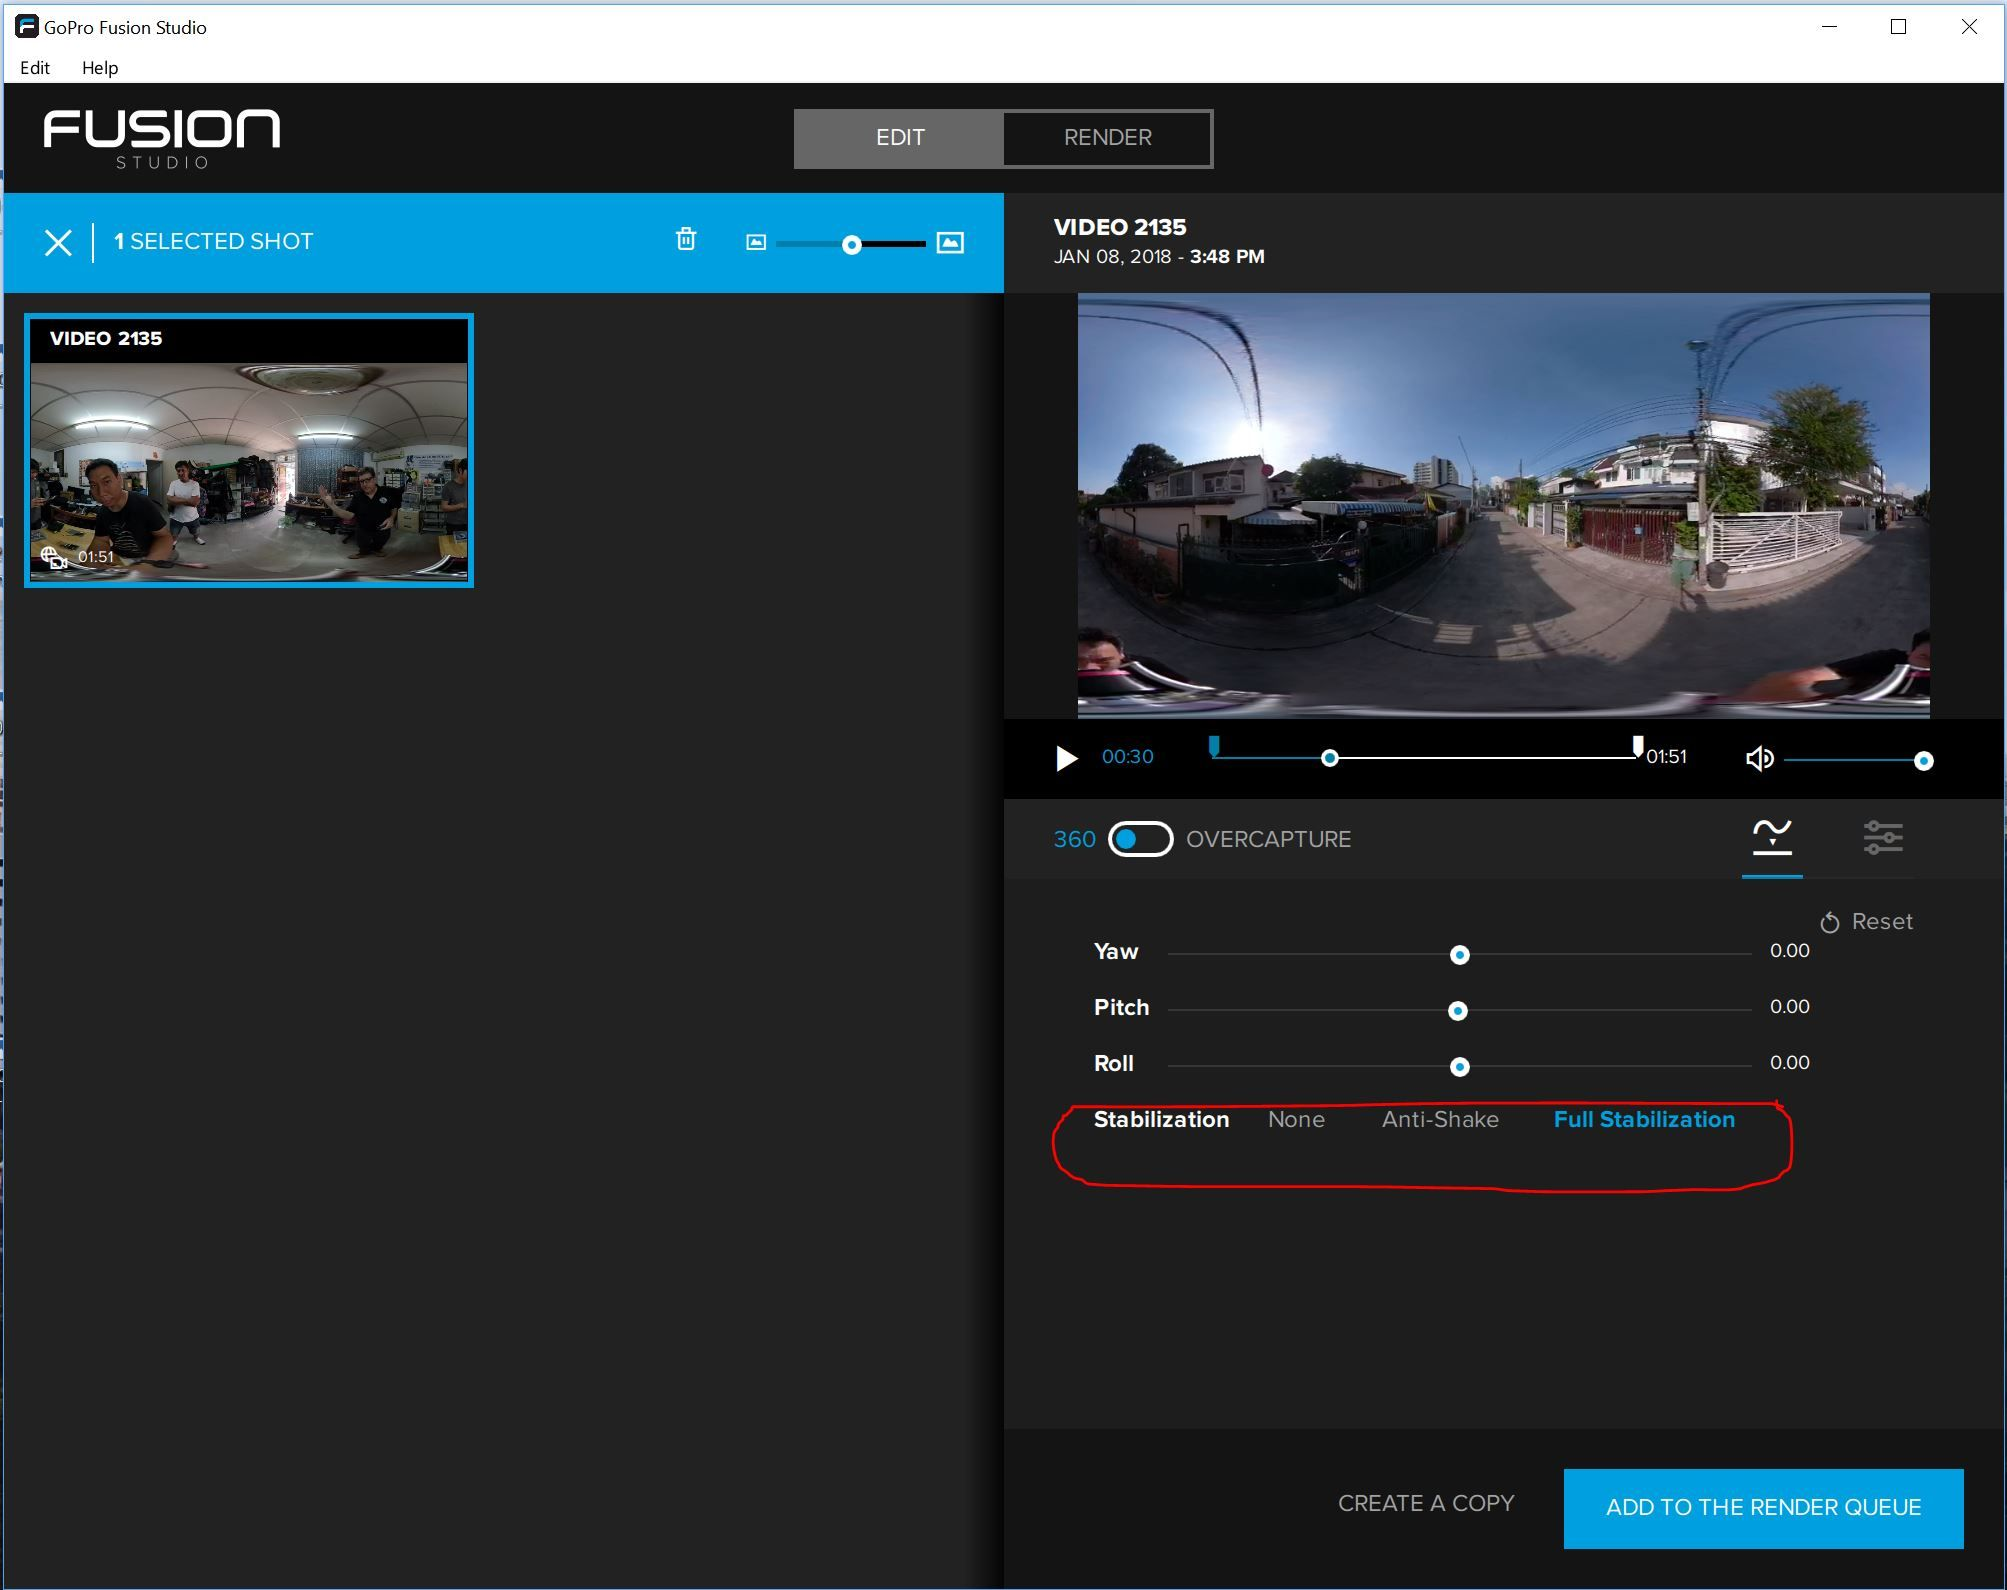 GoPro Fusion Series: GoPro Fusion Studio Now Truly Delivers